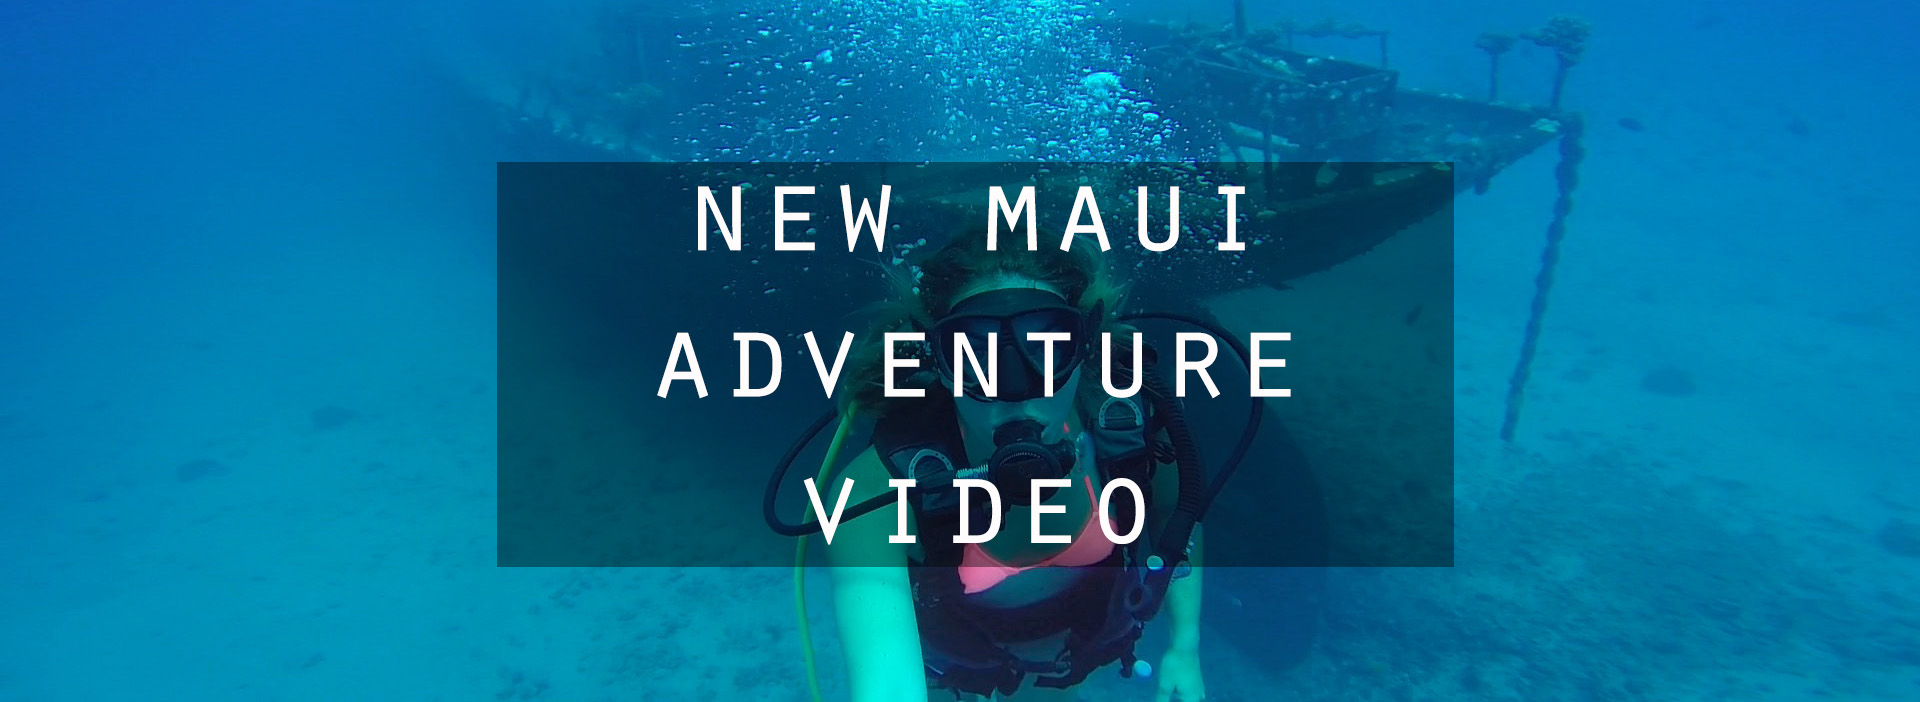 New Maui Adventure Video!